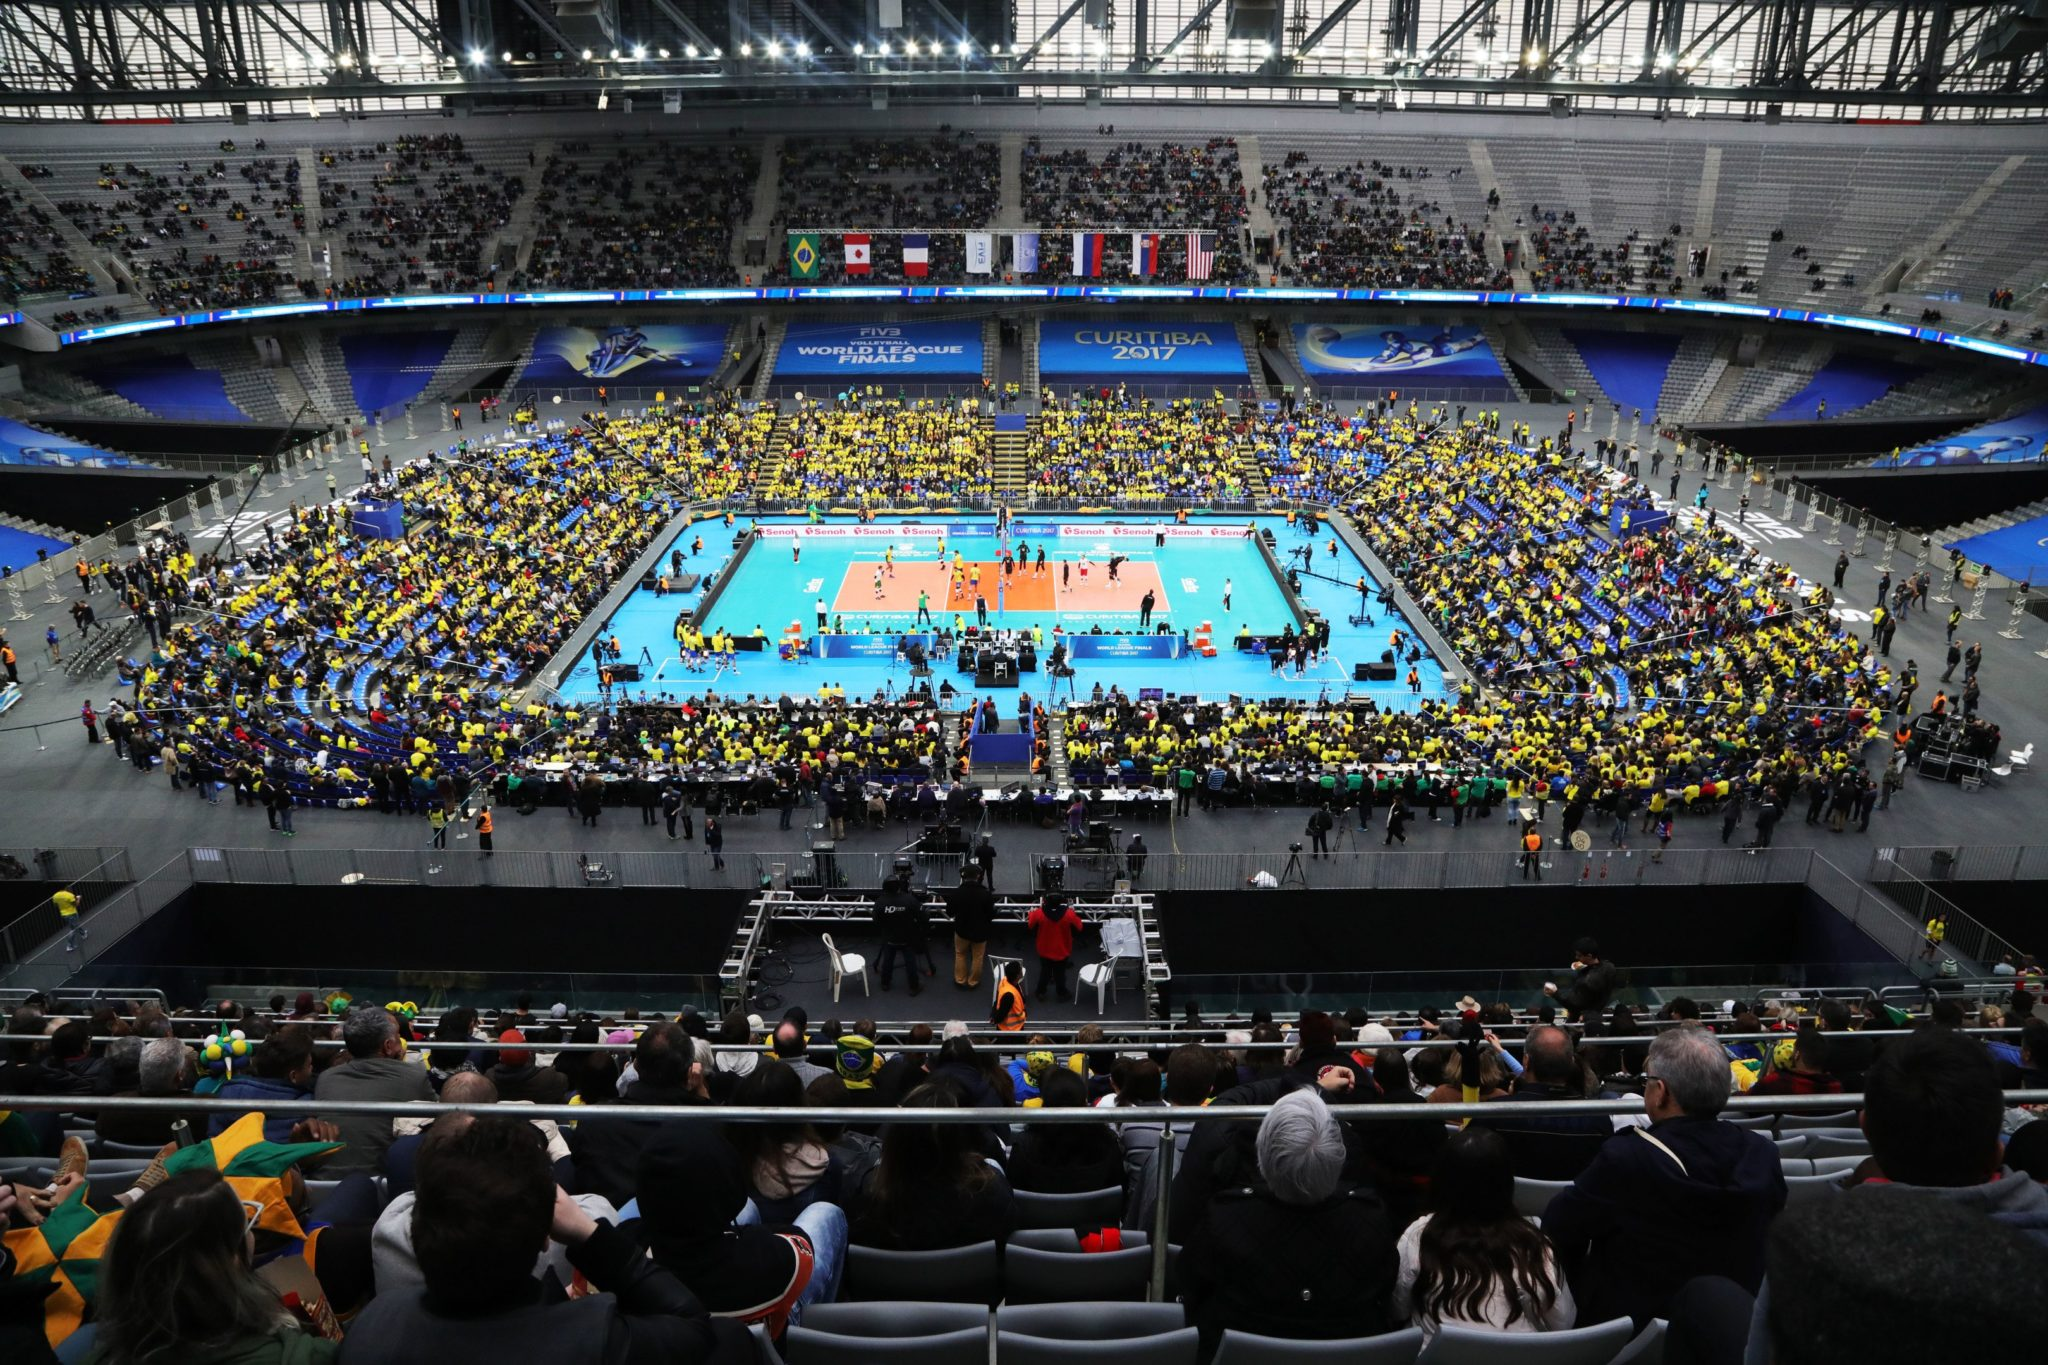 FIVB World League Brings In Nearly 350,000 Fans